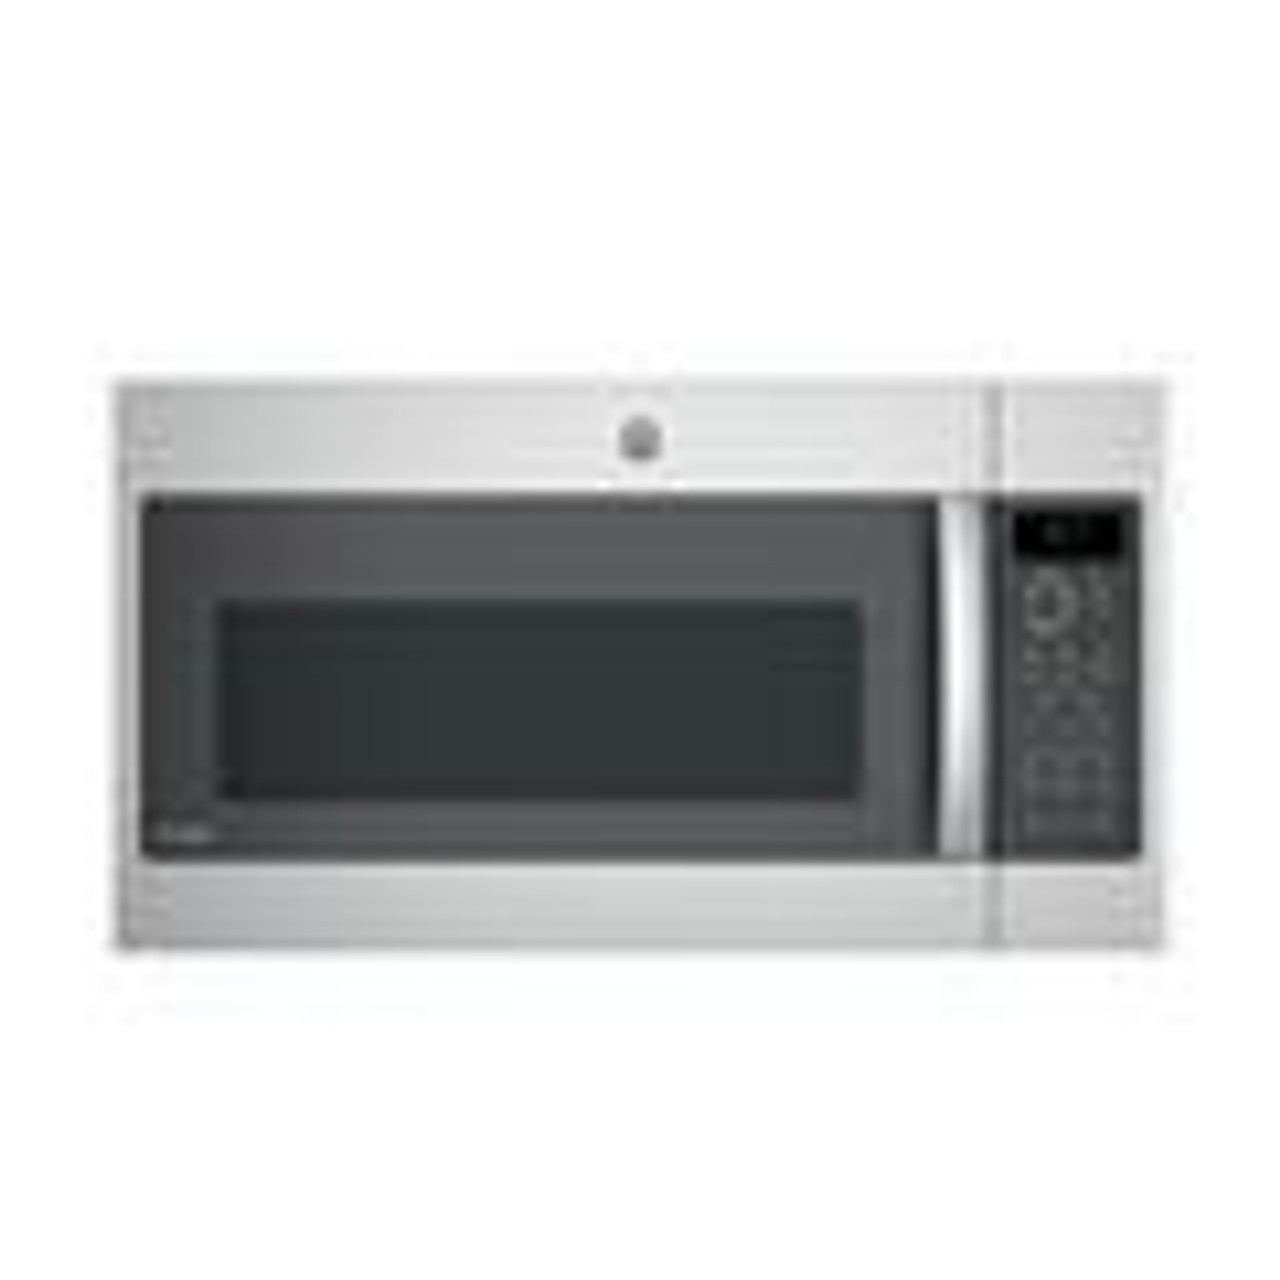 Microwave Parts & Accessories